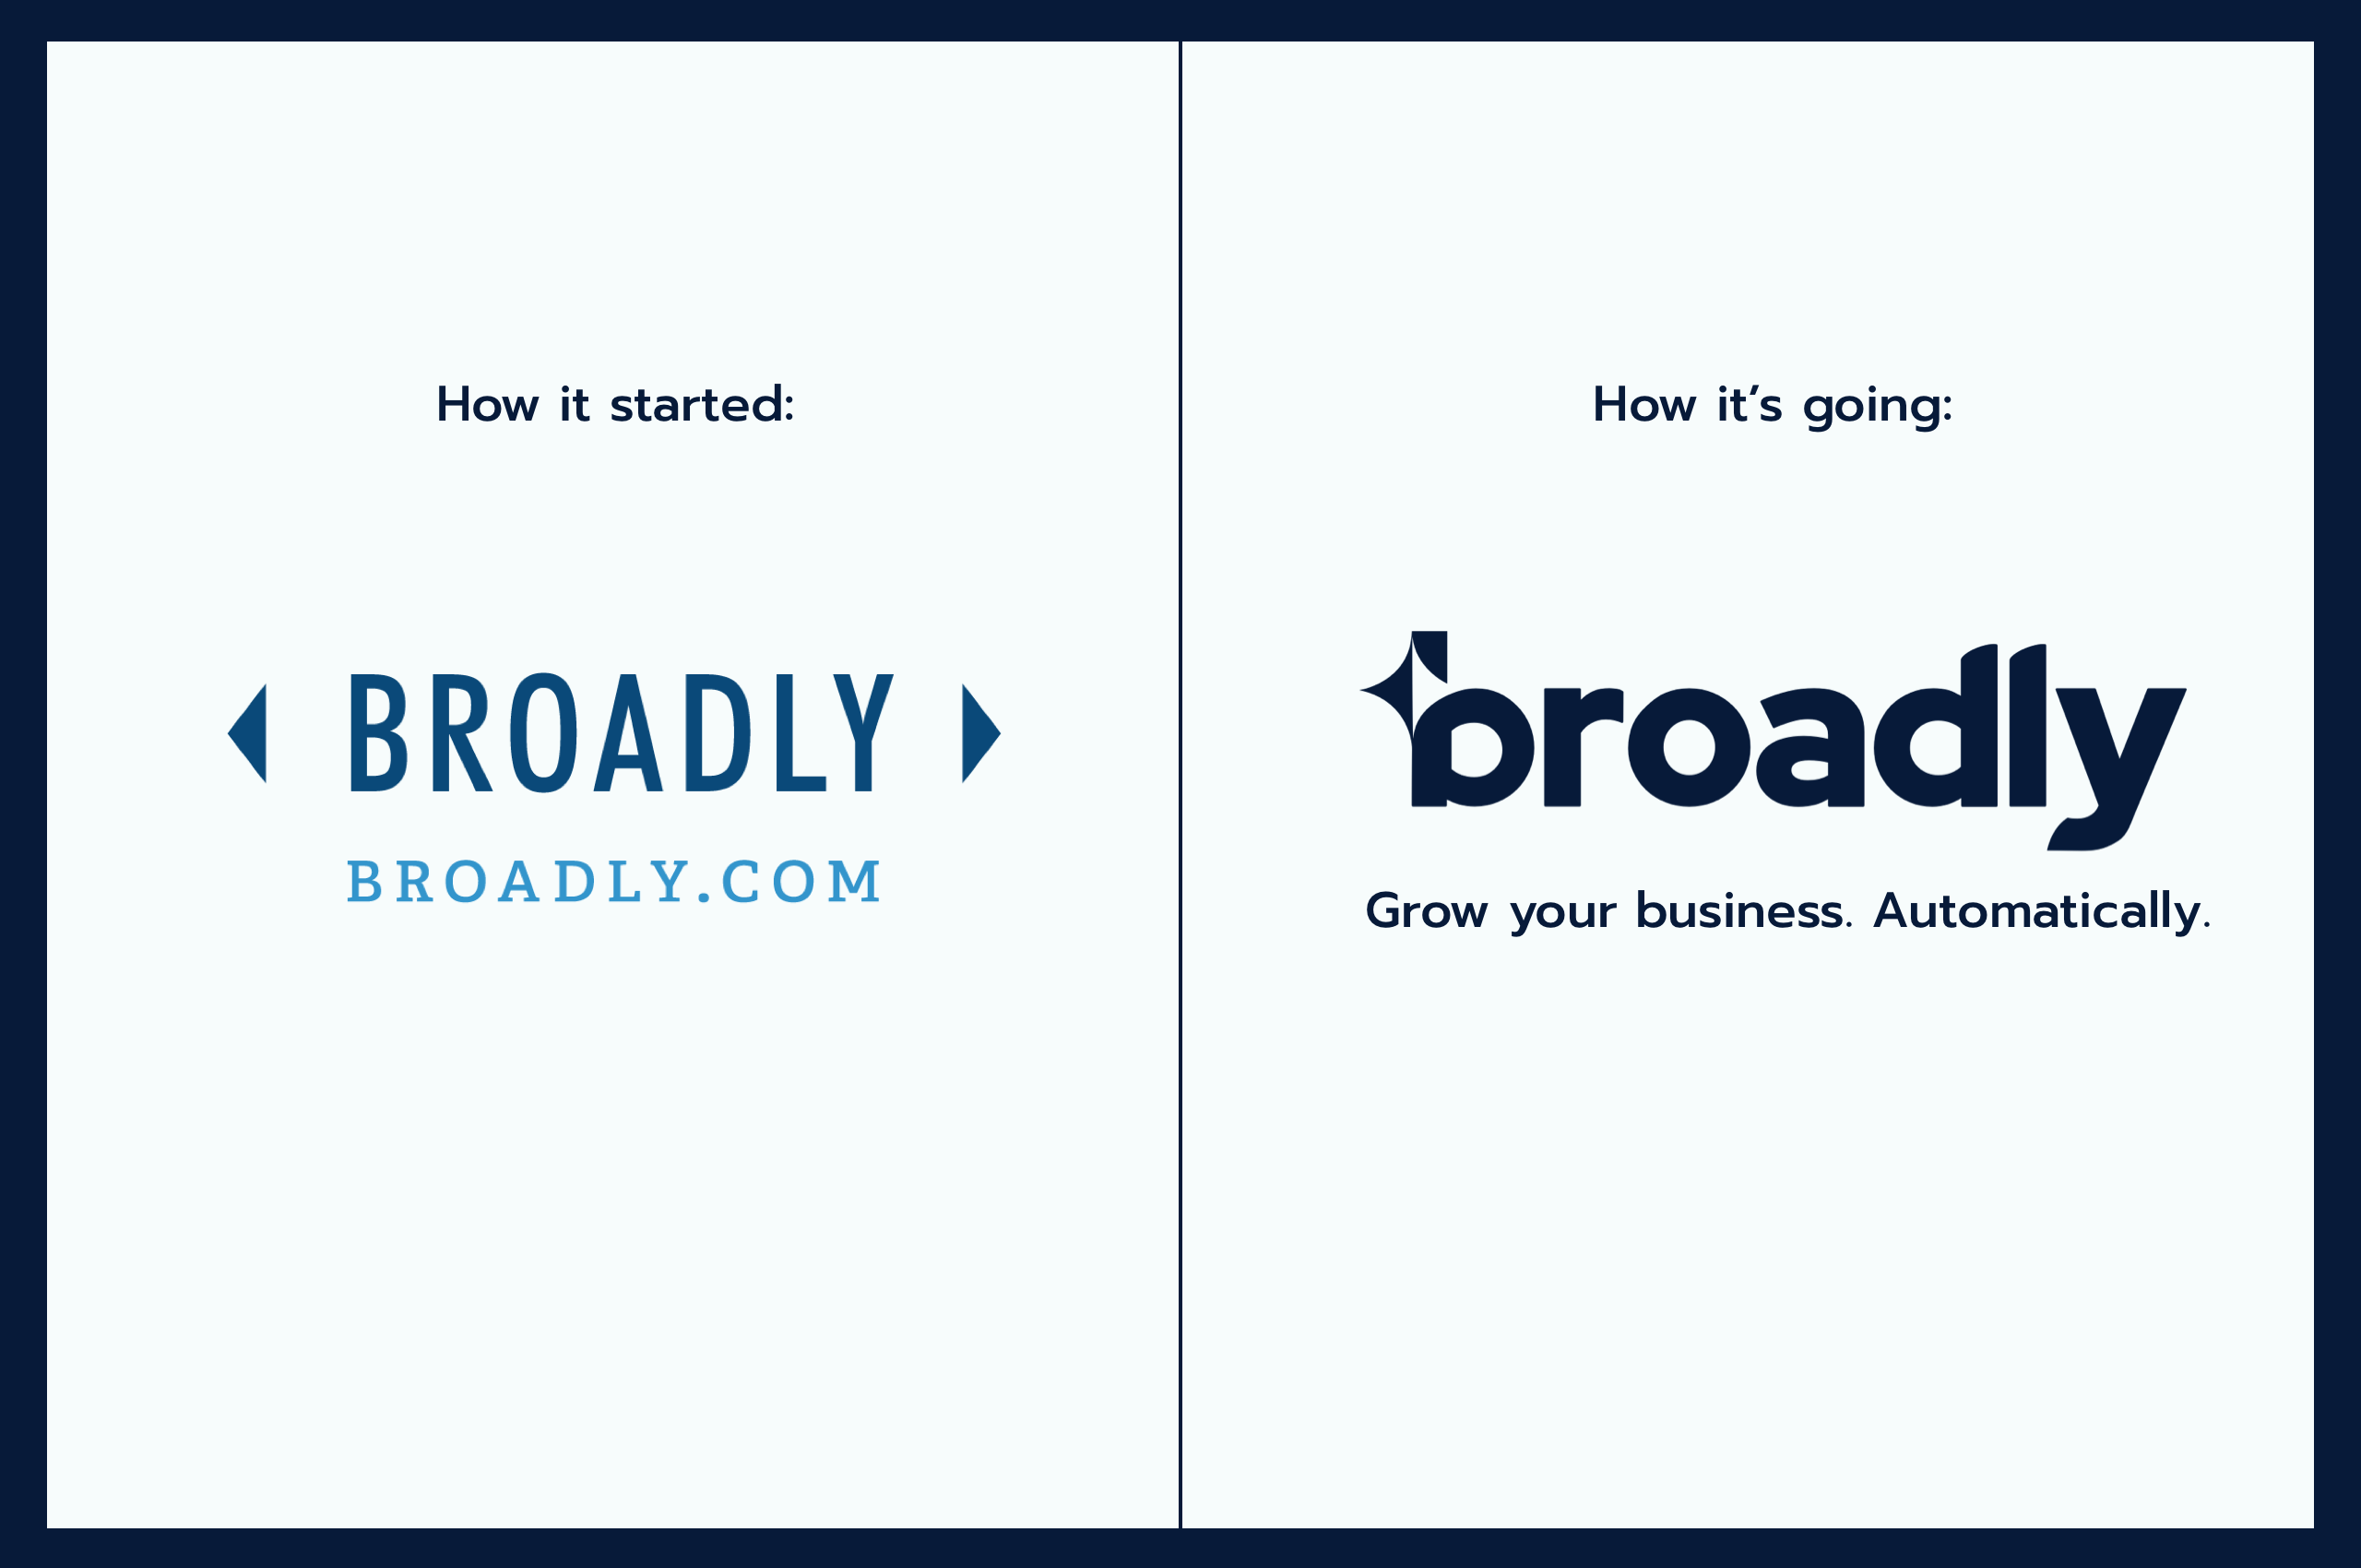 Old Broadly logo compared to the new Broadly logo